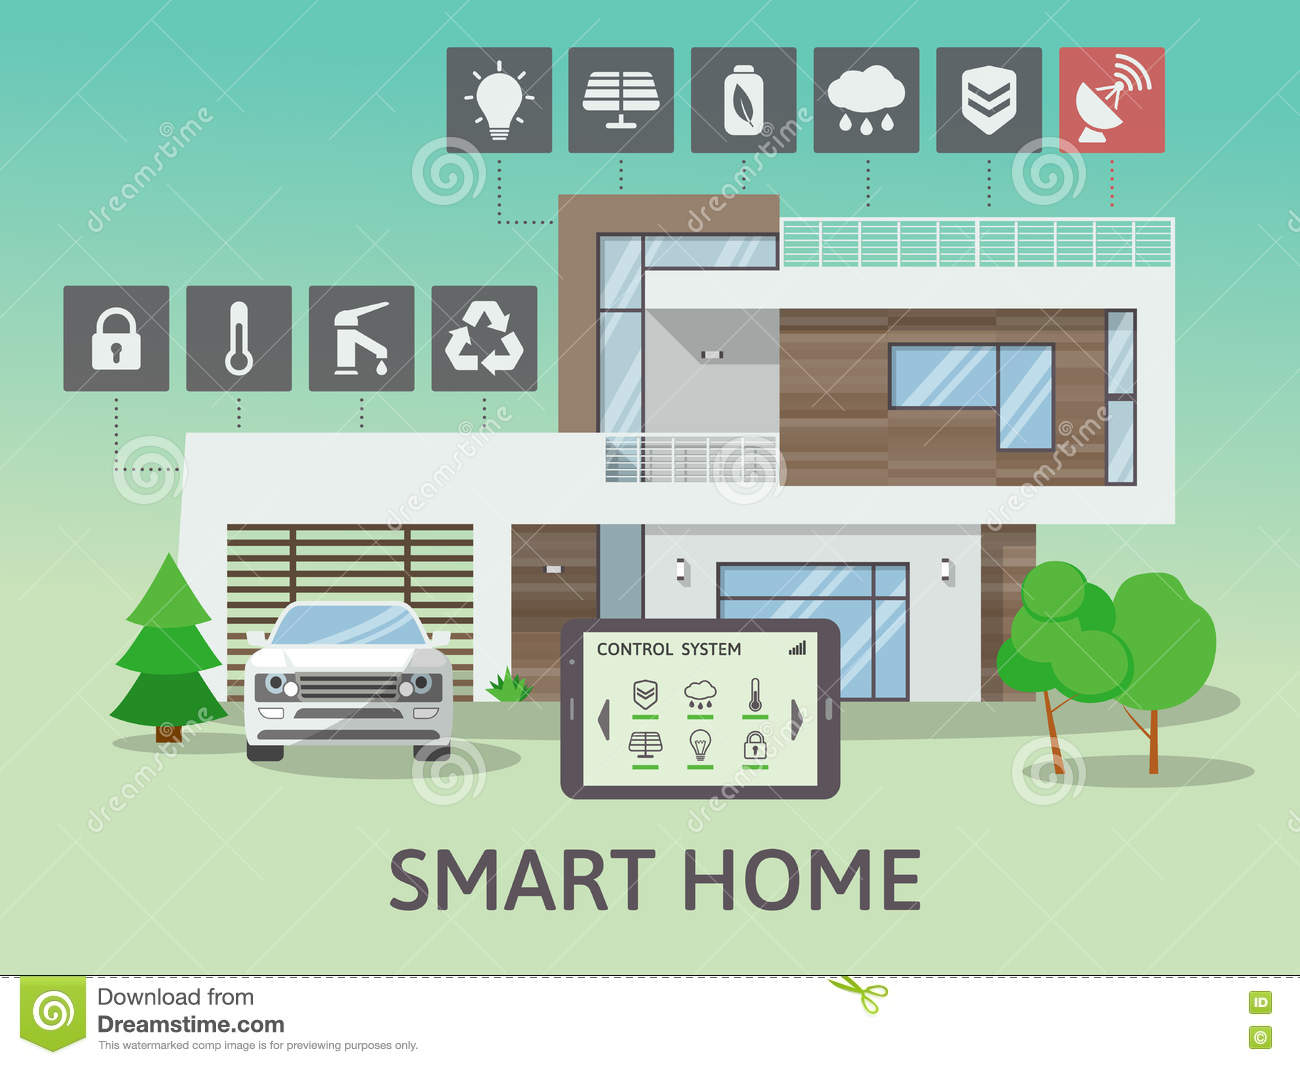 Hausautomation Welches System Welches Smart Home System Smart Home Licht Swalif